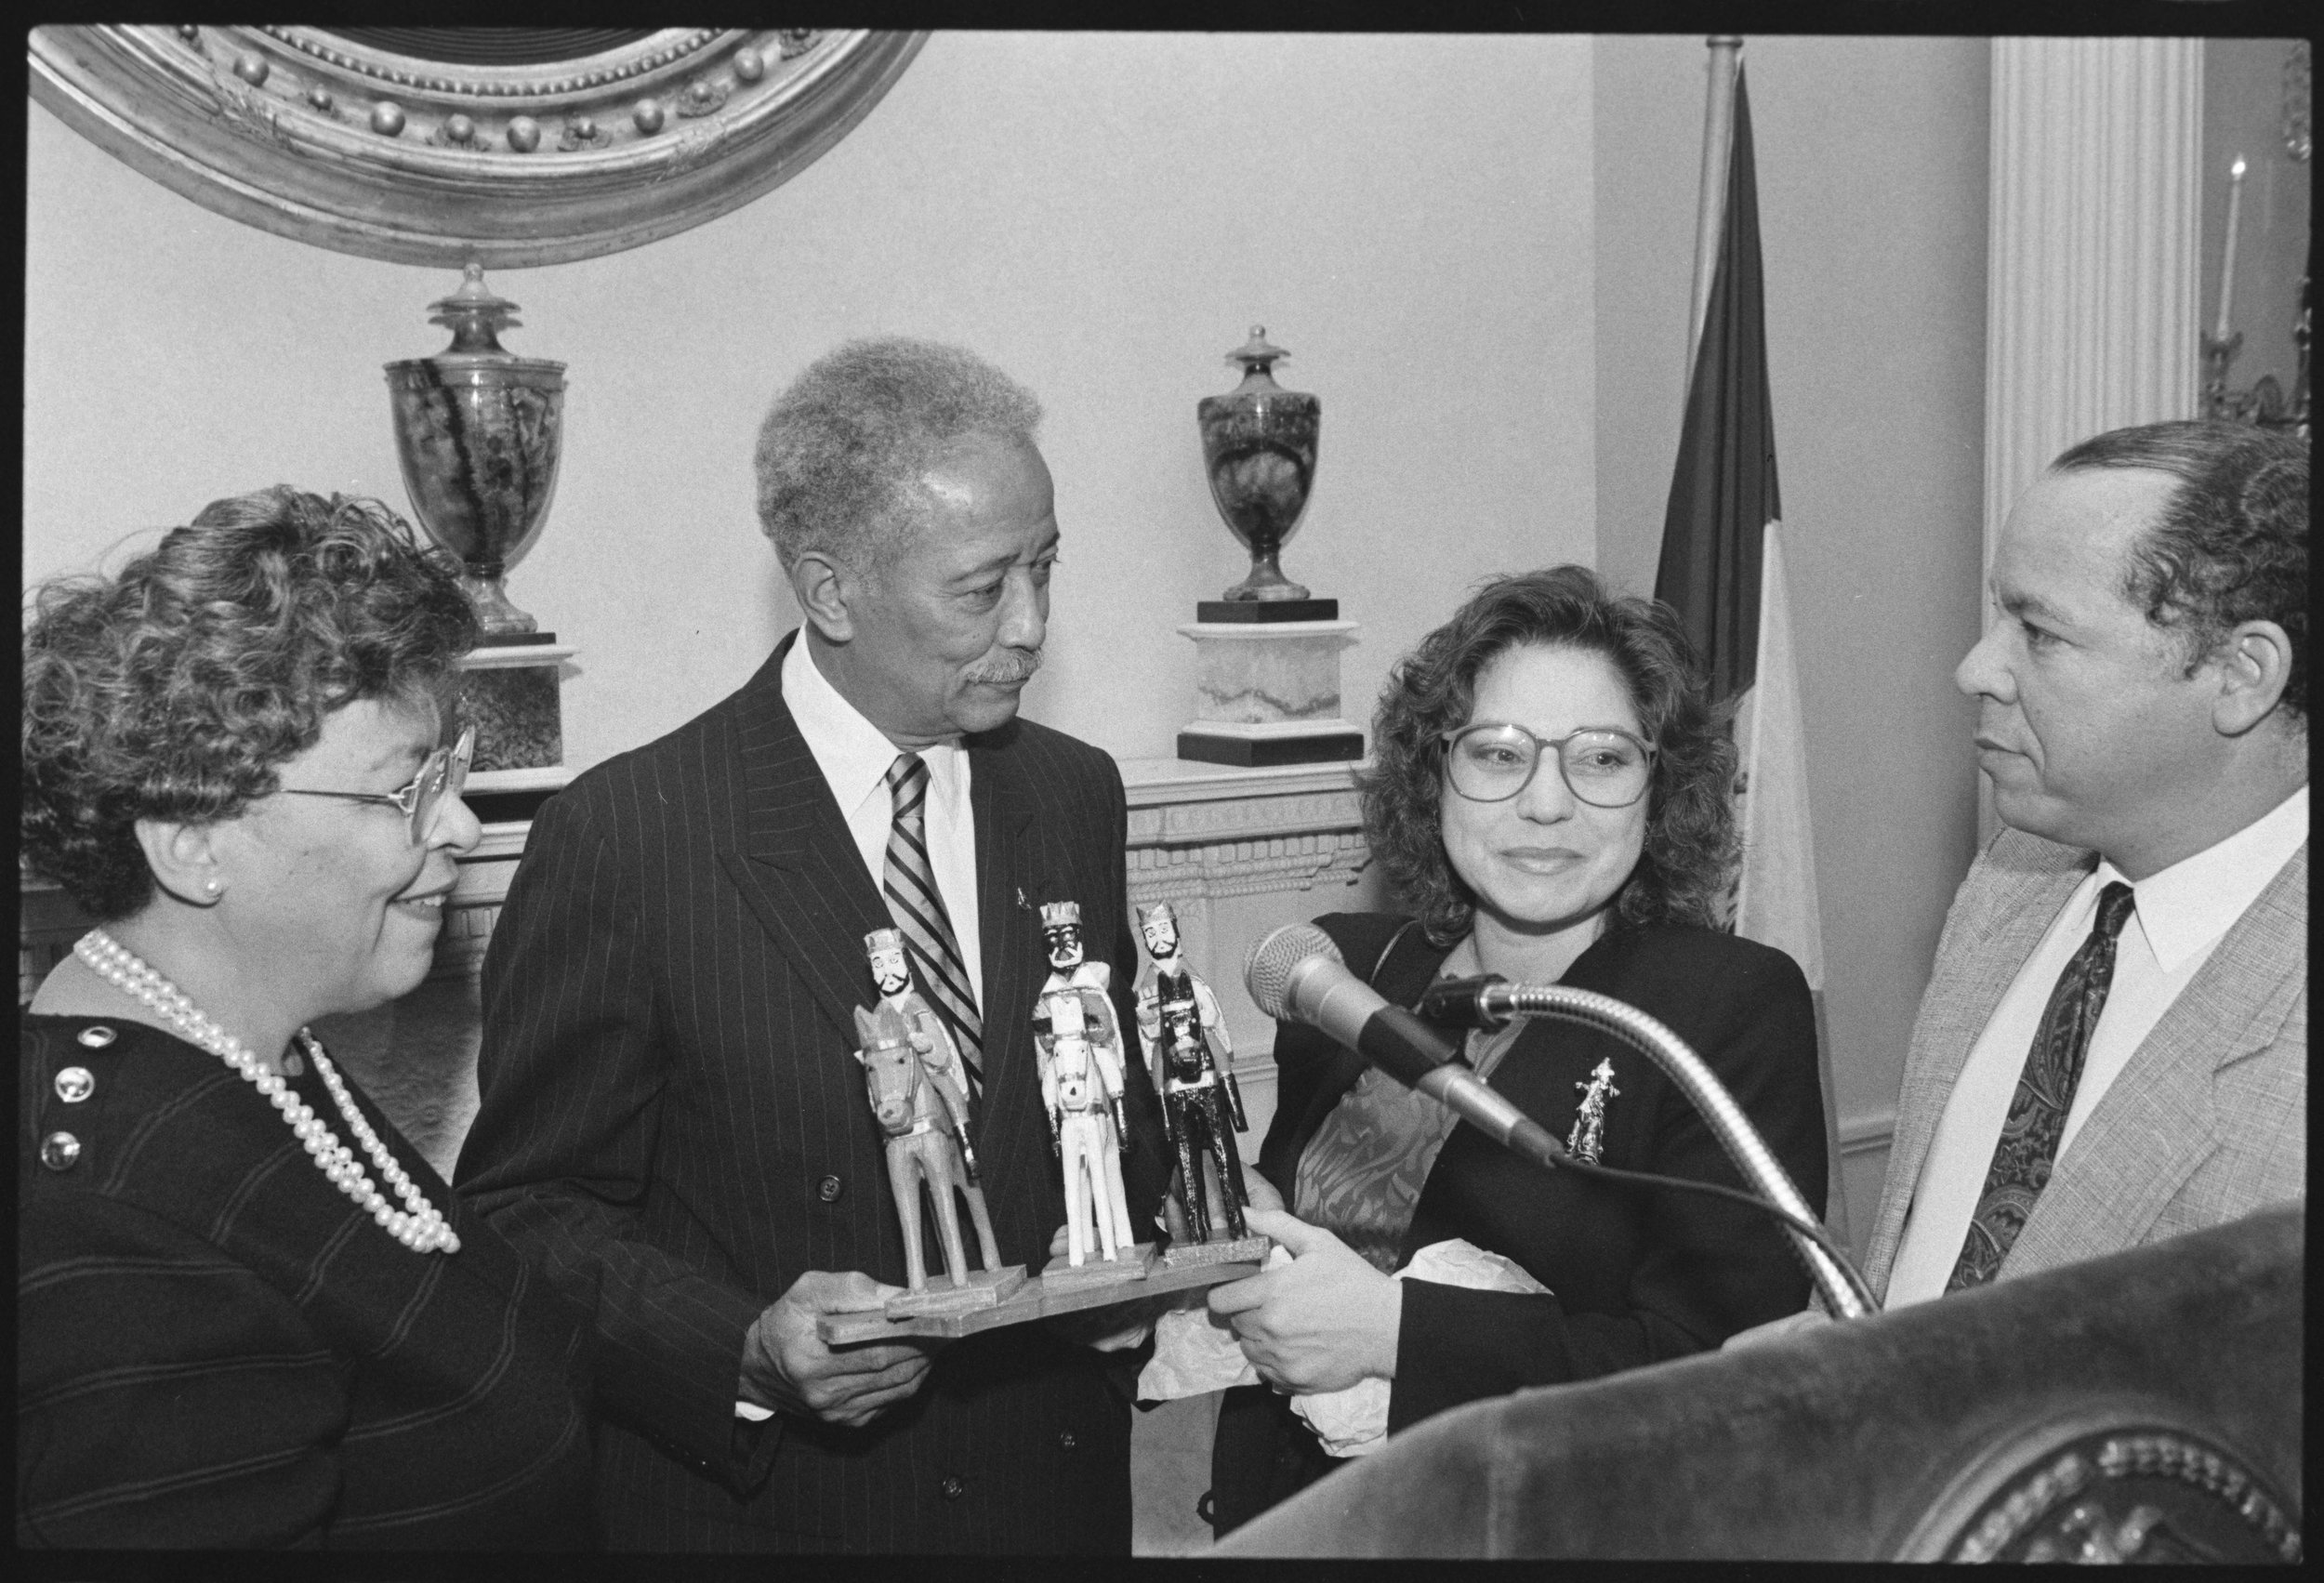 Mayor and Mrs. Dinkins were presented with a wood carving of the Three Kings during a Three Kings Day Feast in 1993. Mayor Dinkins Collection, NYC Municipal Archives.